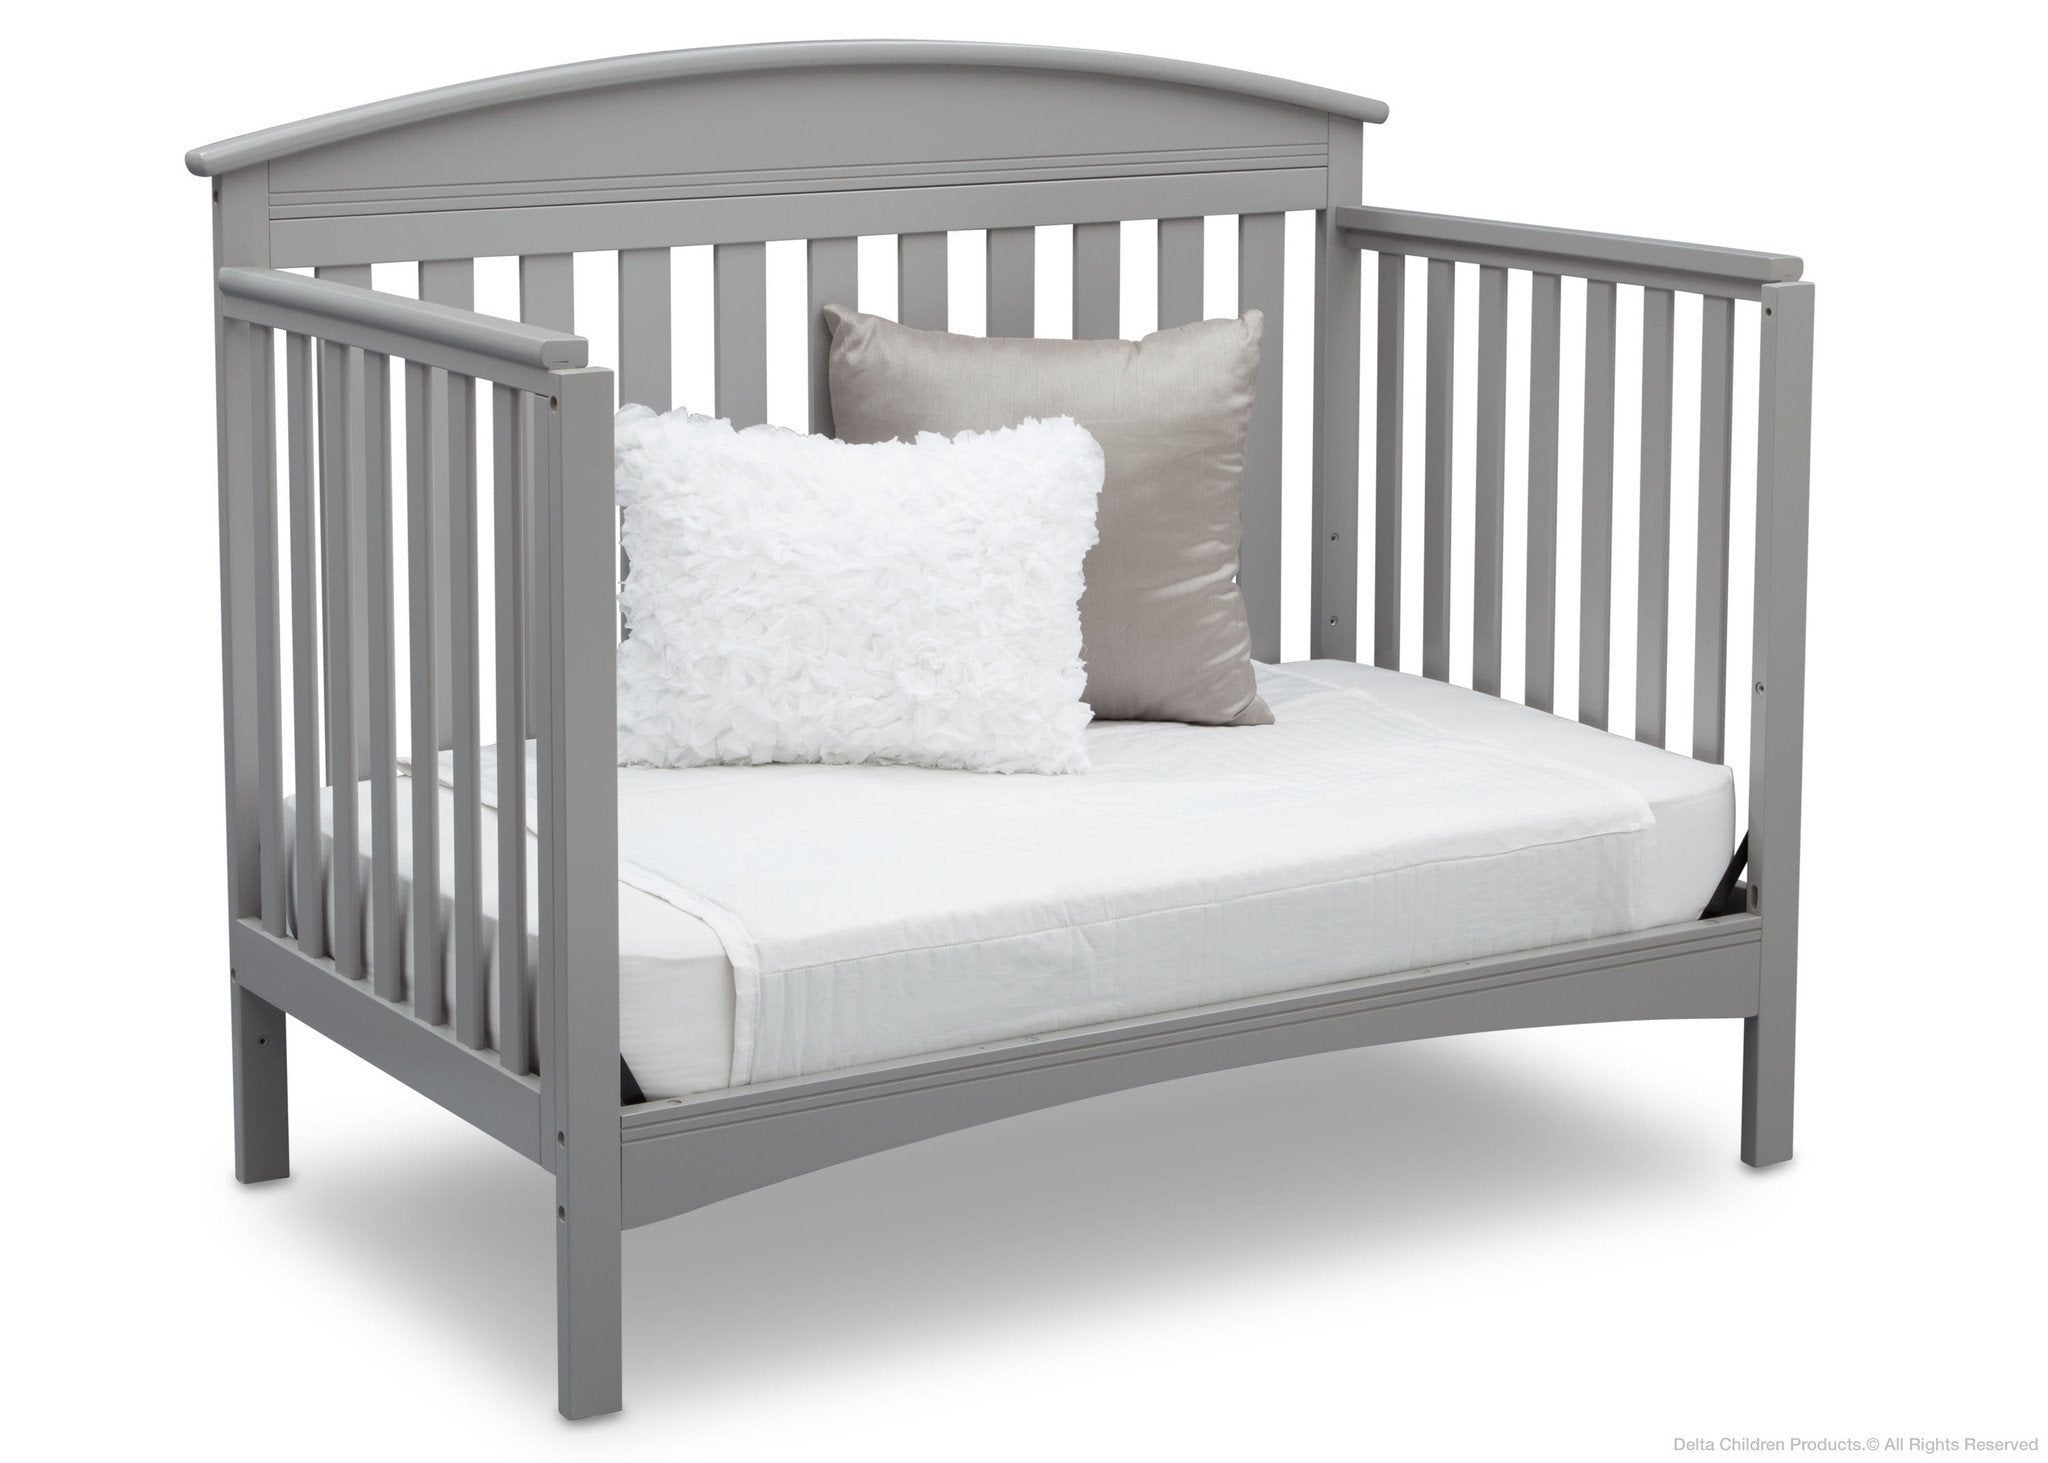 Delta Children Grey (026) Abby 4-in-1 Crib Daybed Conversion Side View a4a